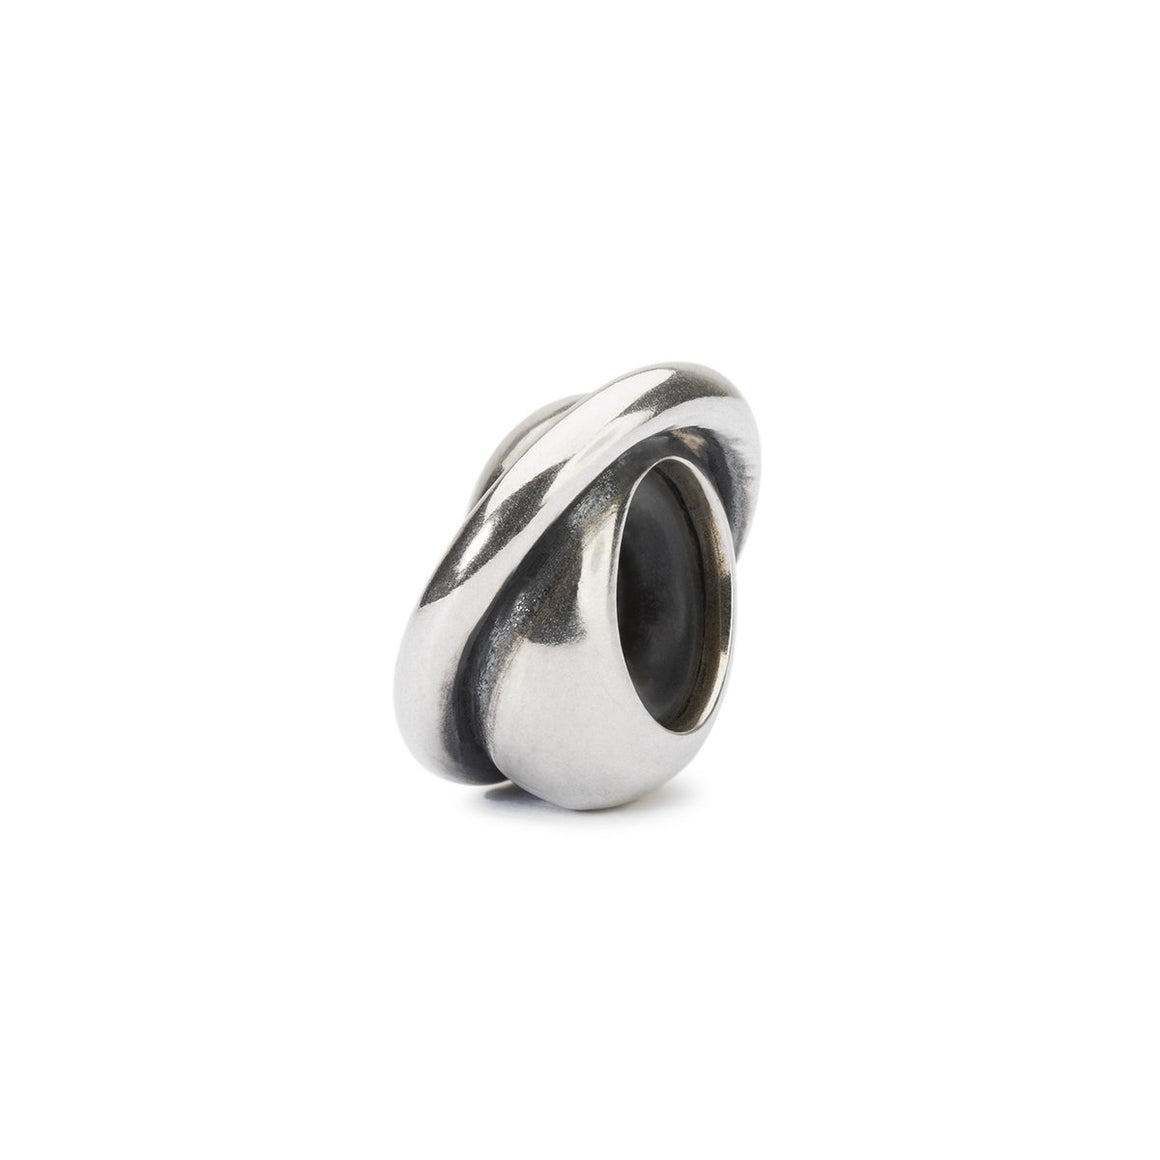 Trollbeads spacer bead with an added band over the smooth bead